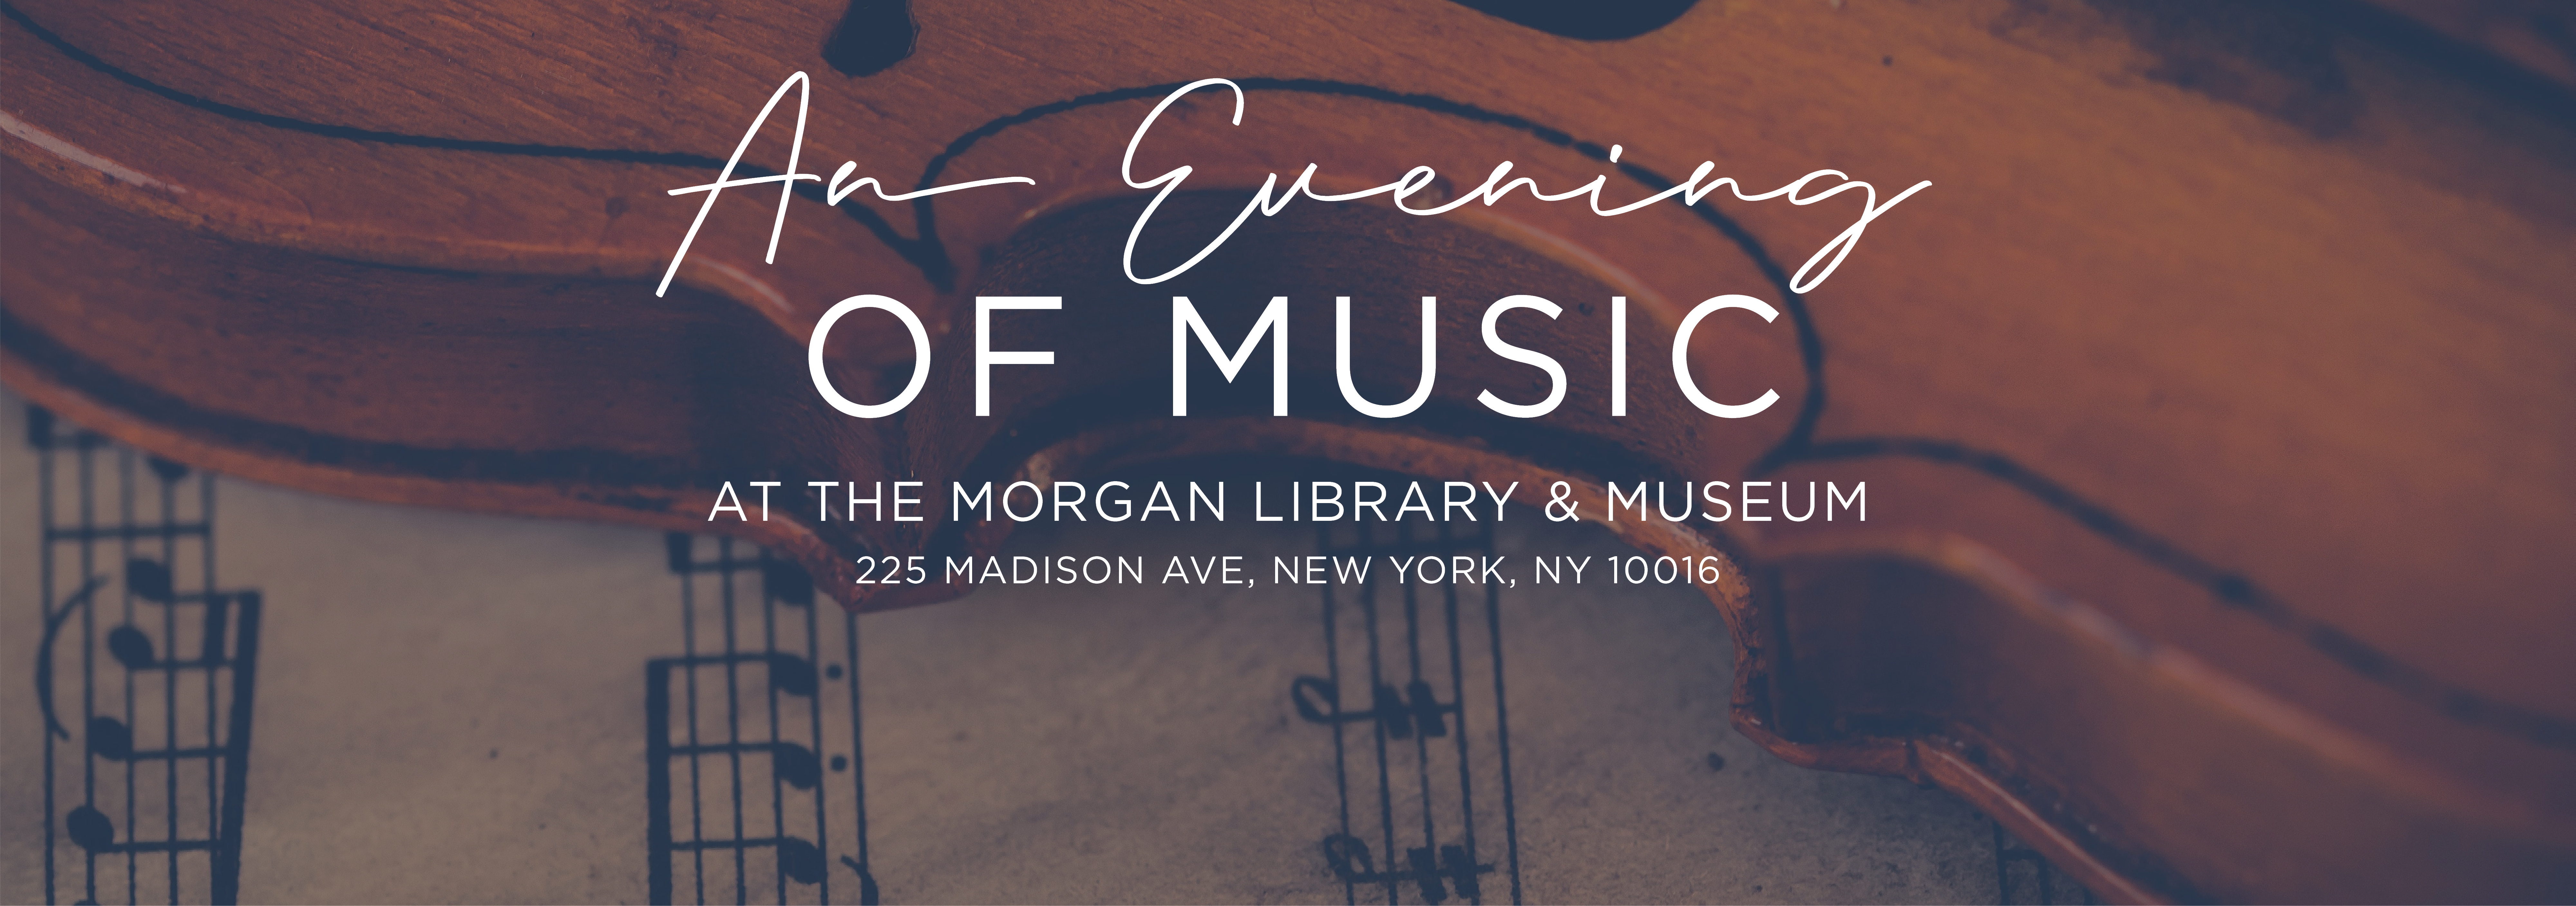 homepage slider with violin in background, advertising an Evening of Music on Dec 19